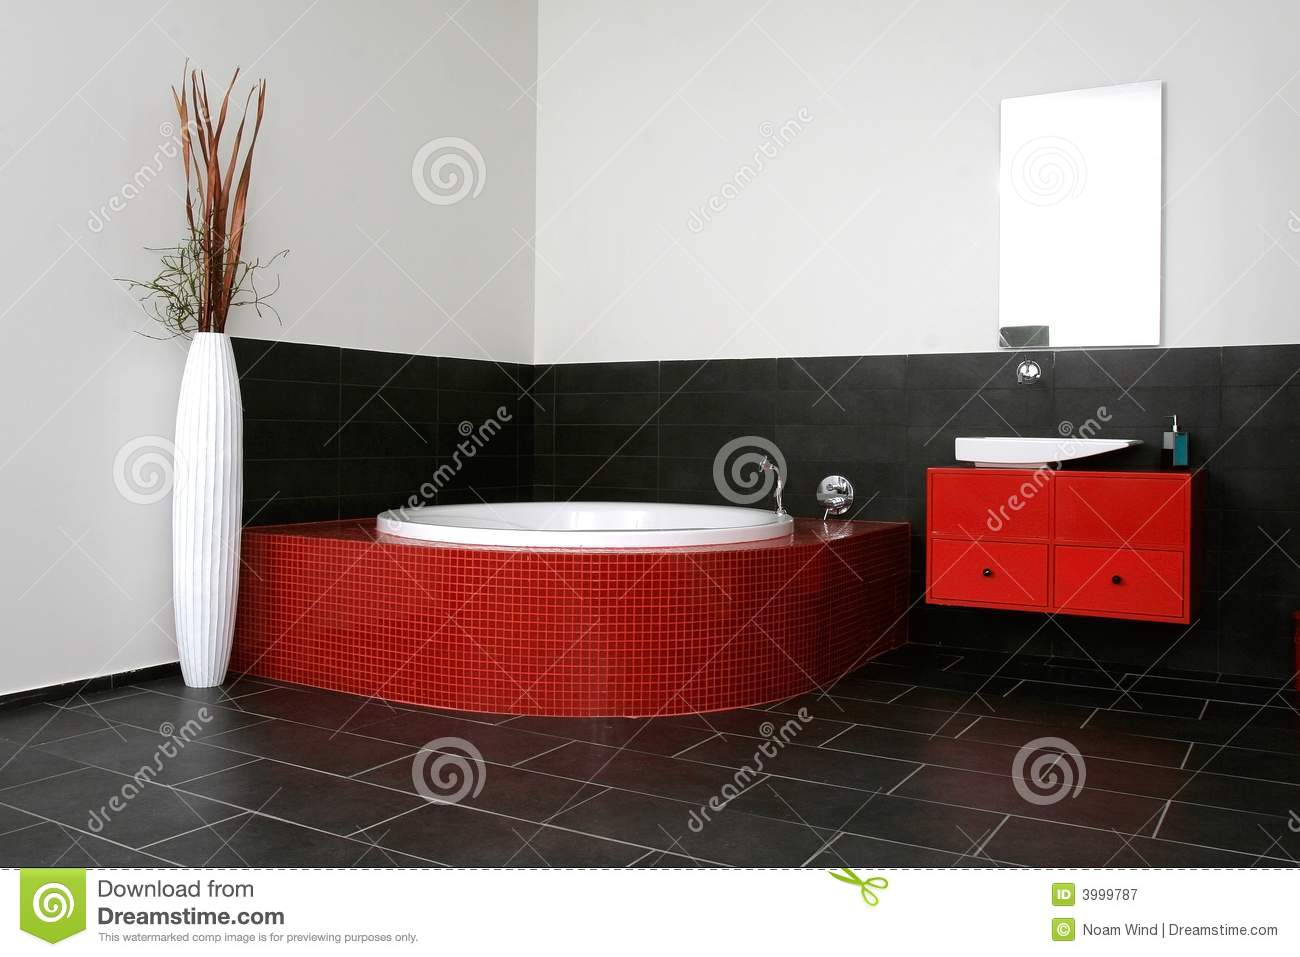 red bathroom royalty free stock photography image 3999787. Black Bedroom Furniture Sets. Home Design Ideas